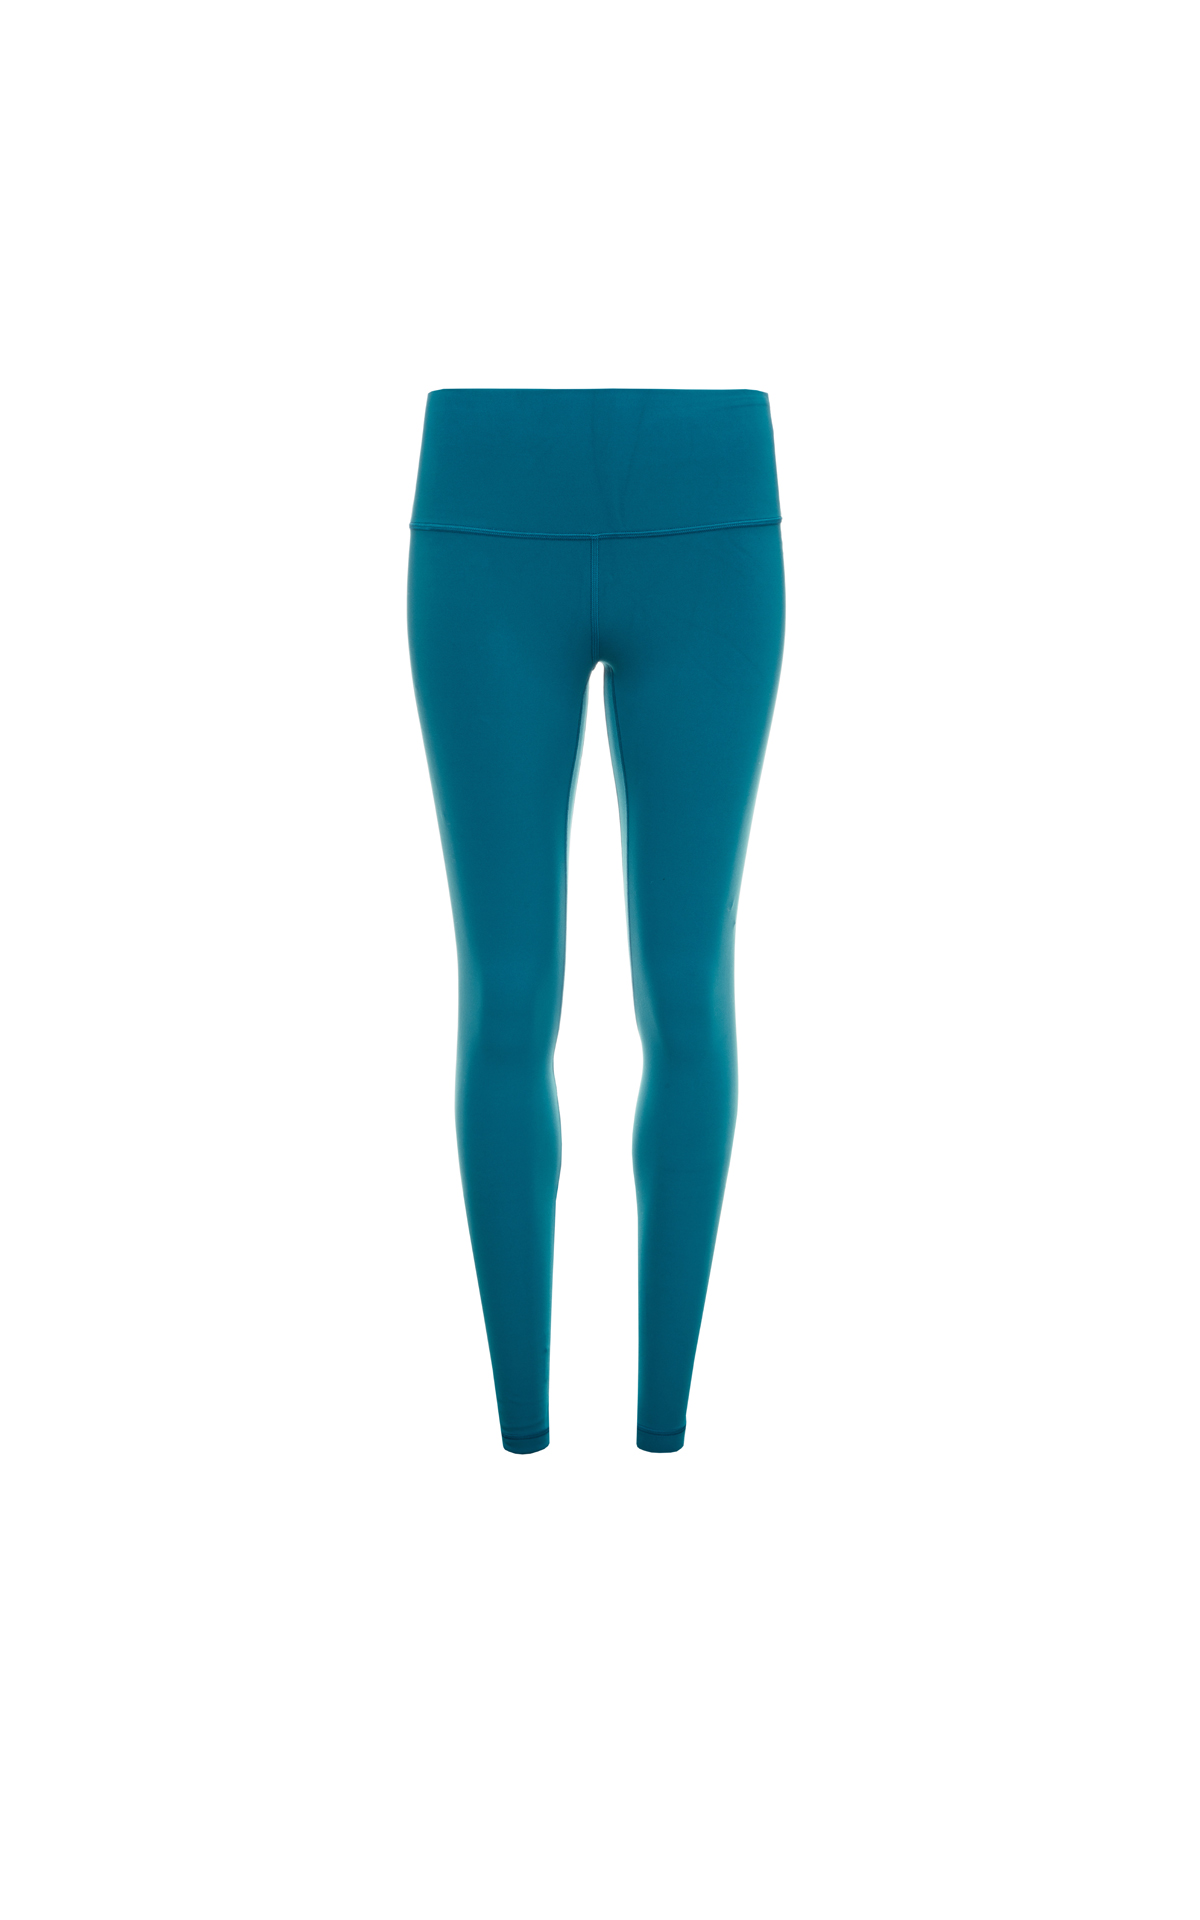 Lululemon  Align pant emerald from Bicester Village